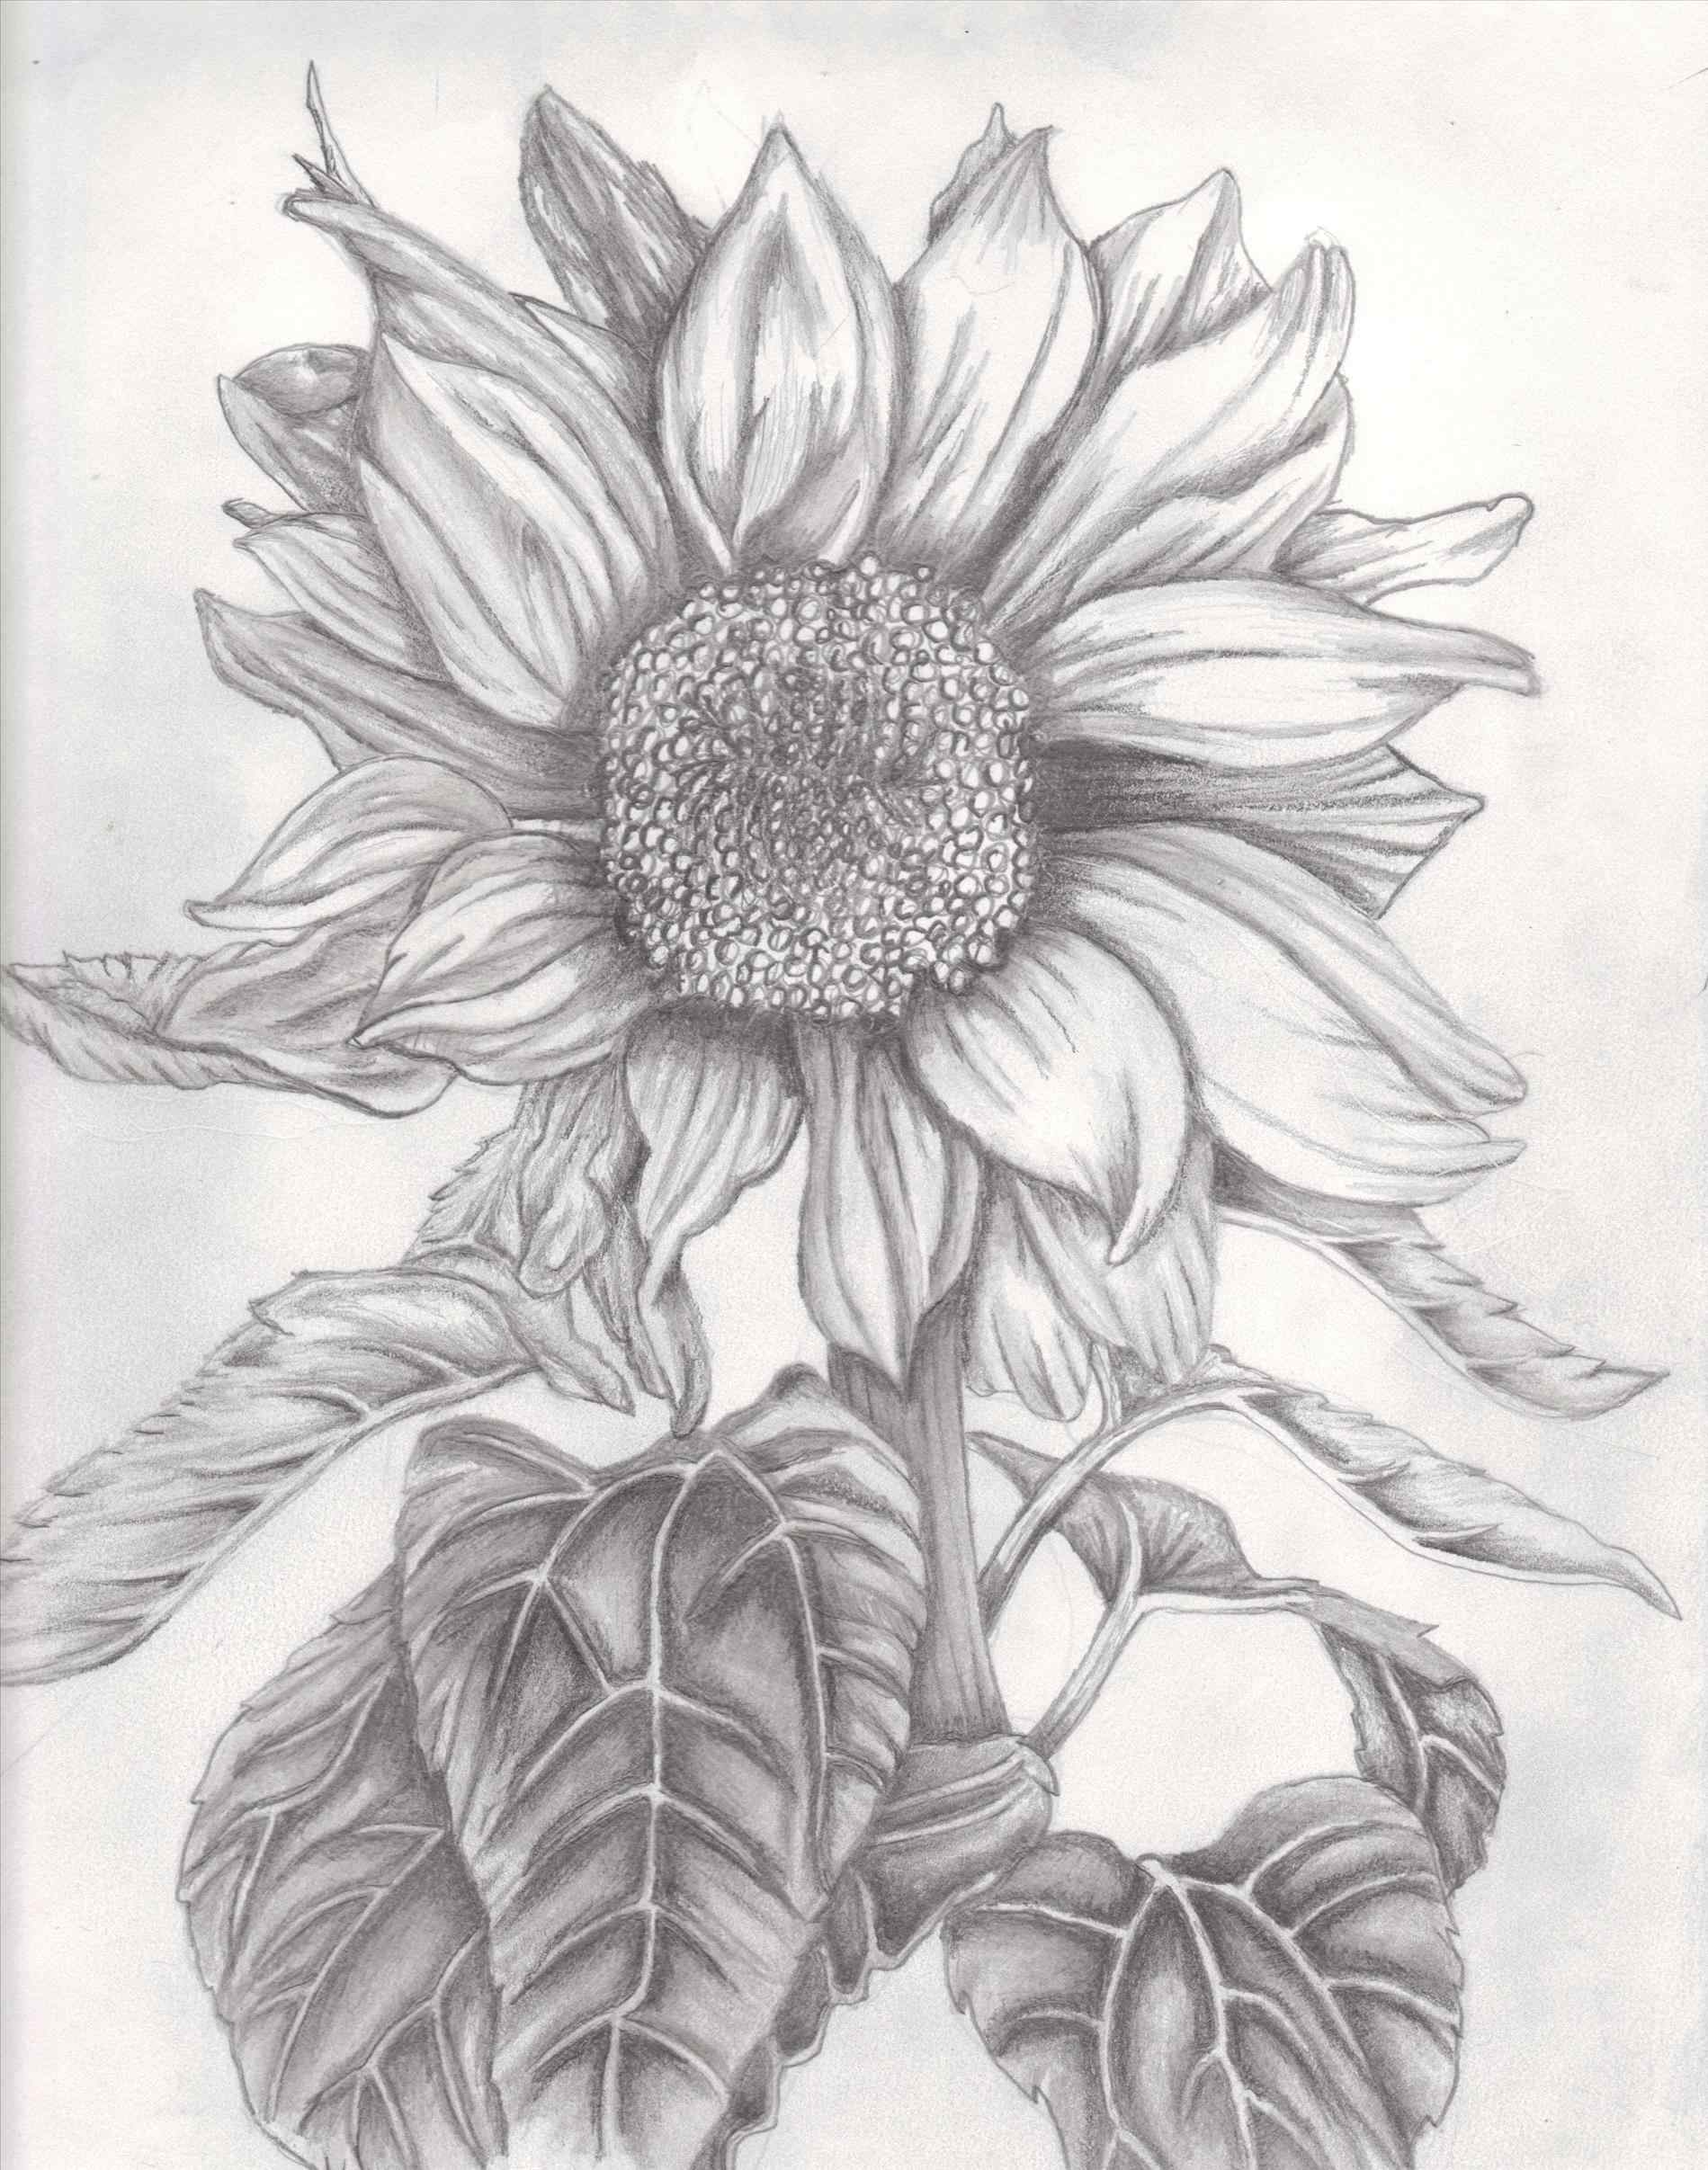 1899x2413 Drawings Of Sunflowers Your Meme Source